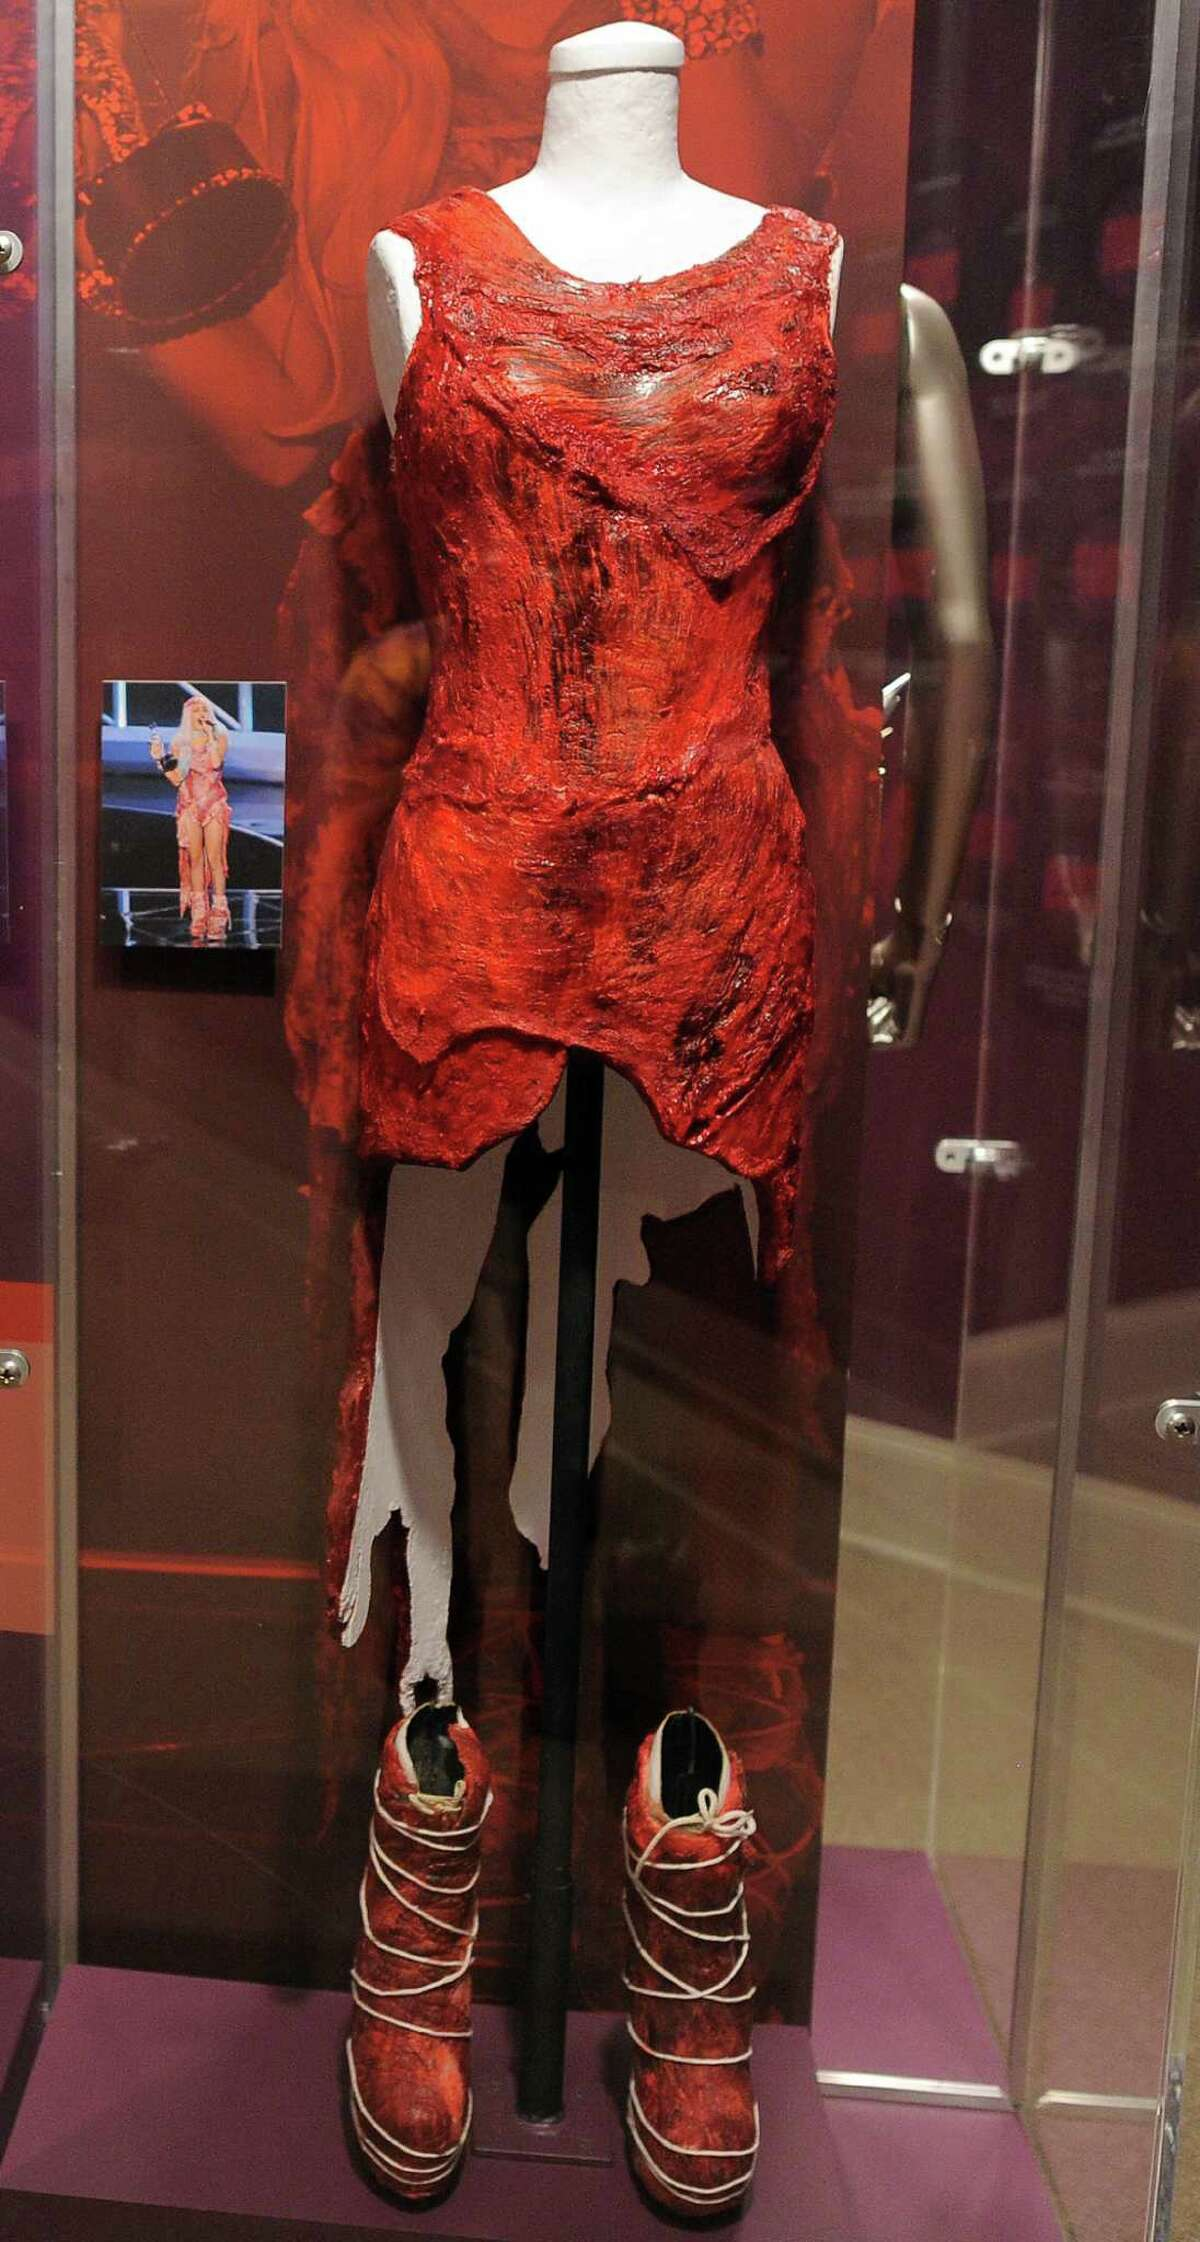 The raw meat dress worn by Lady Gaga at a 2010 awards ceremony is seen at the